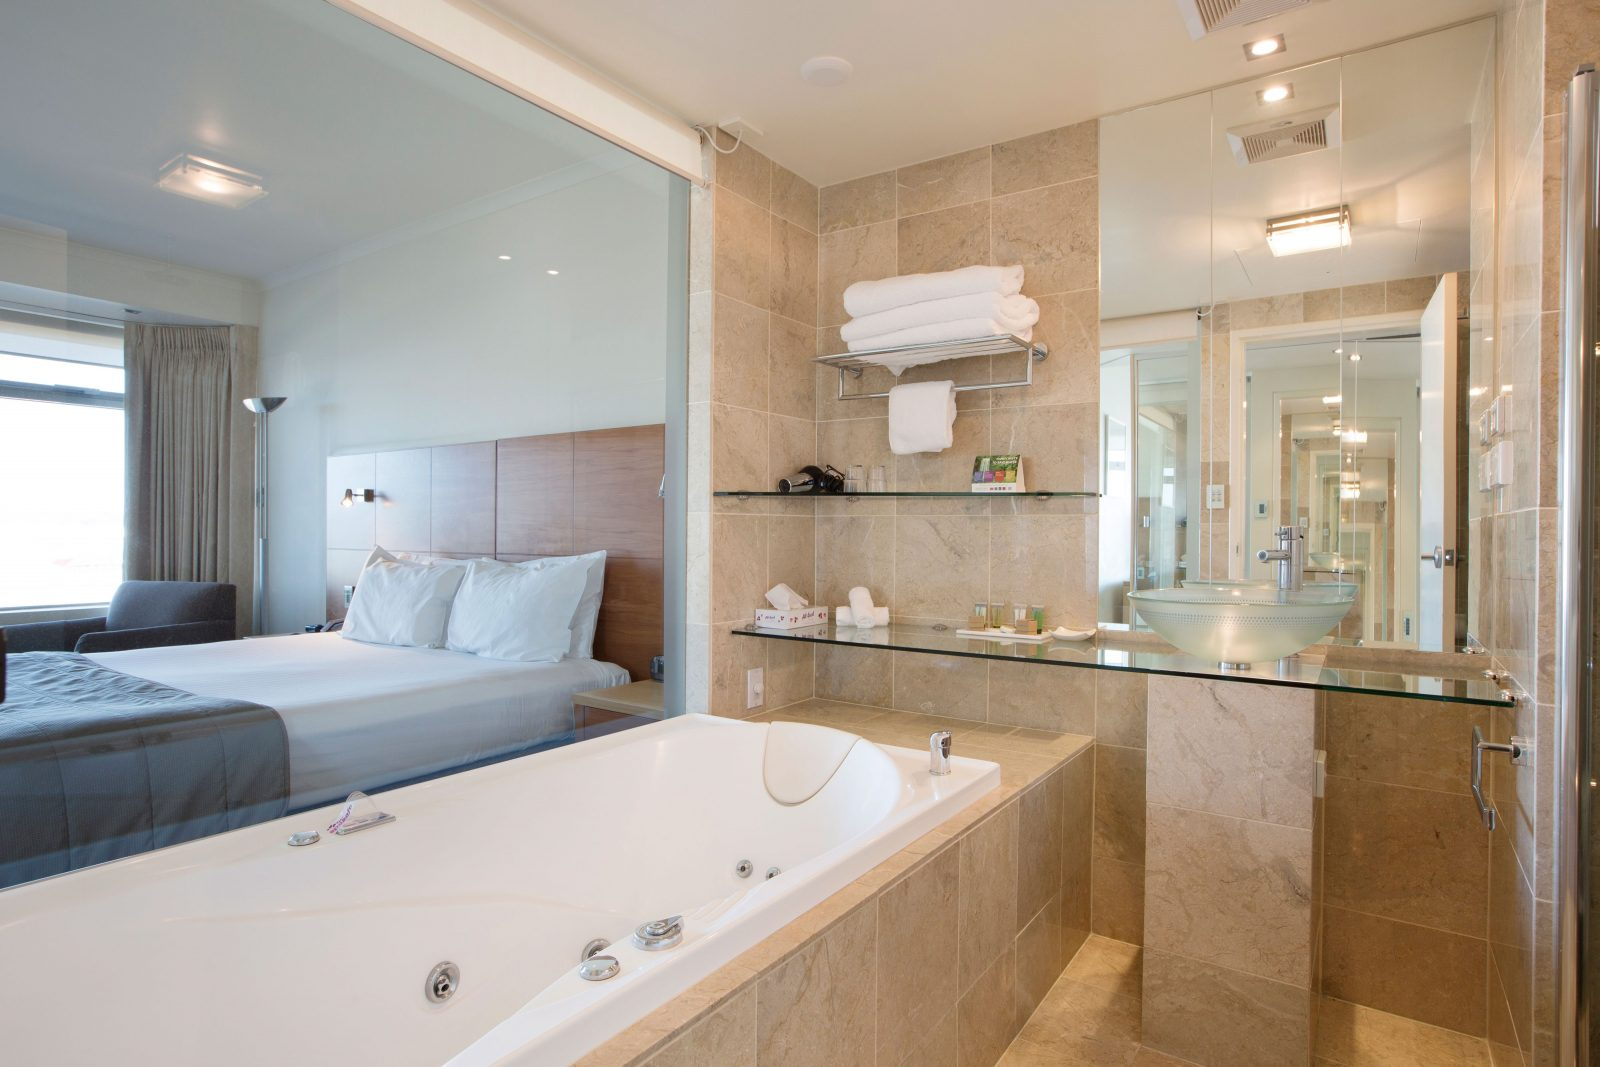 Deluxe Spa Room features a king size bed and luxury bathroom with spa